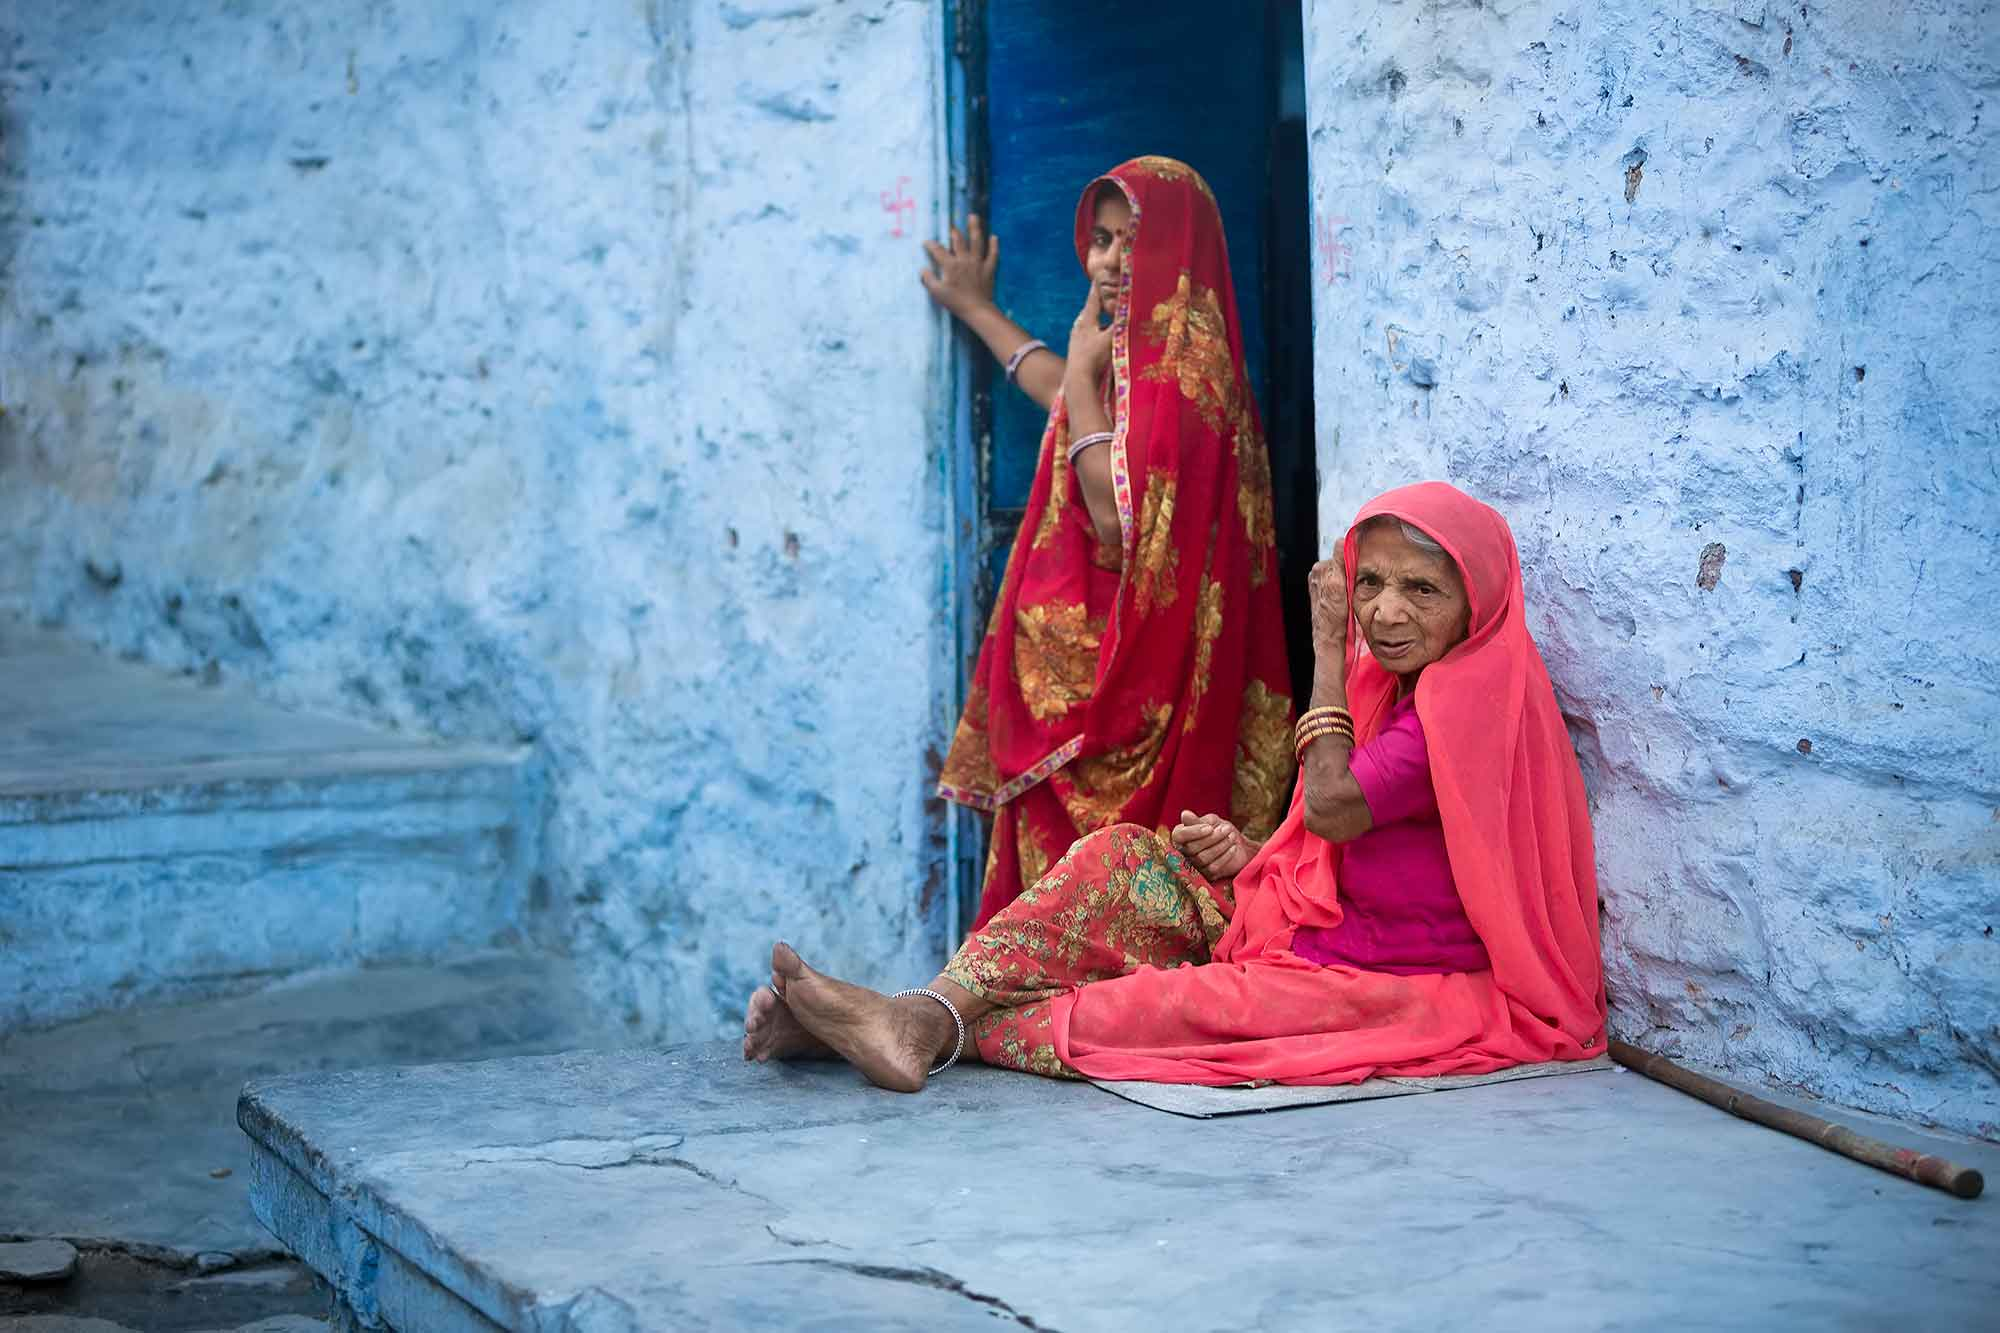 woman-sitting-jodhpur-india